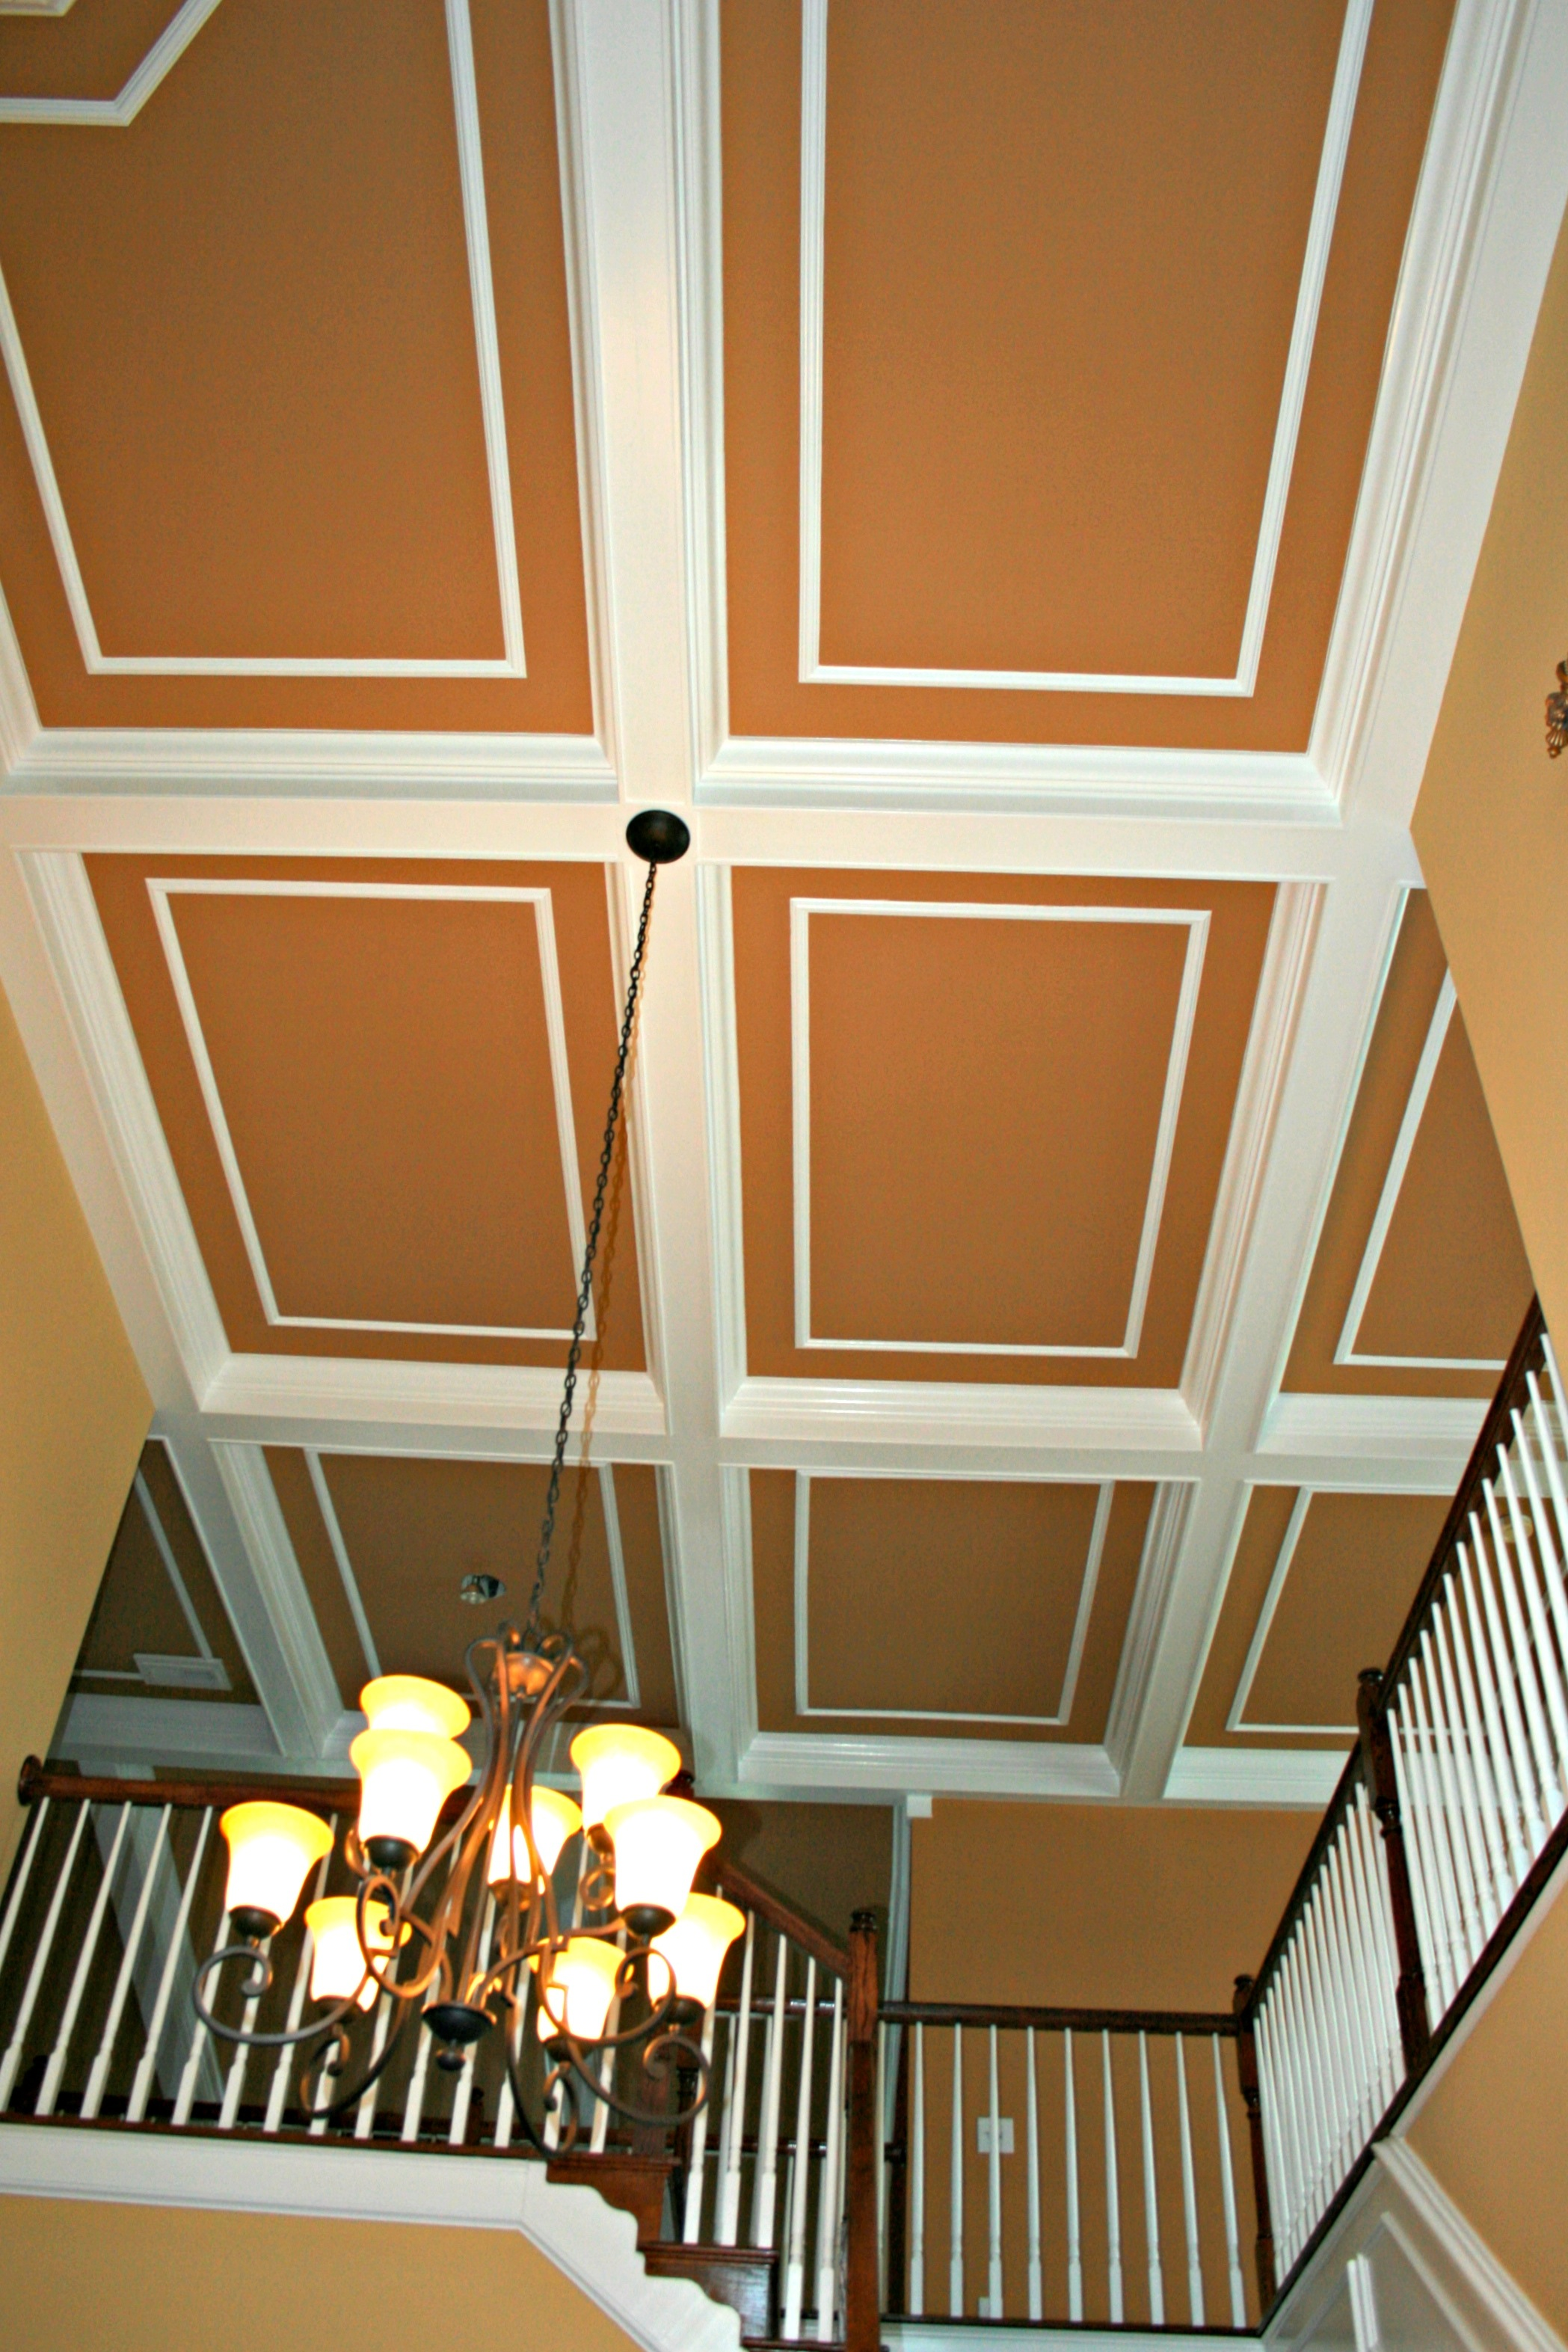 tulum beams co smsender ceilings for decorative ceiling